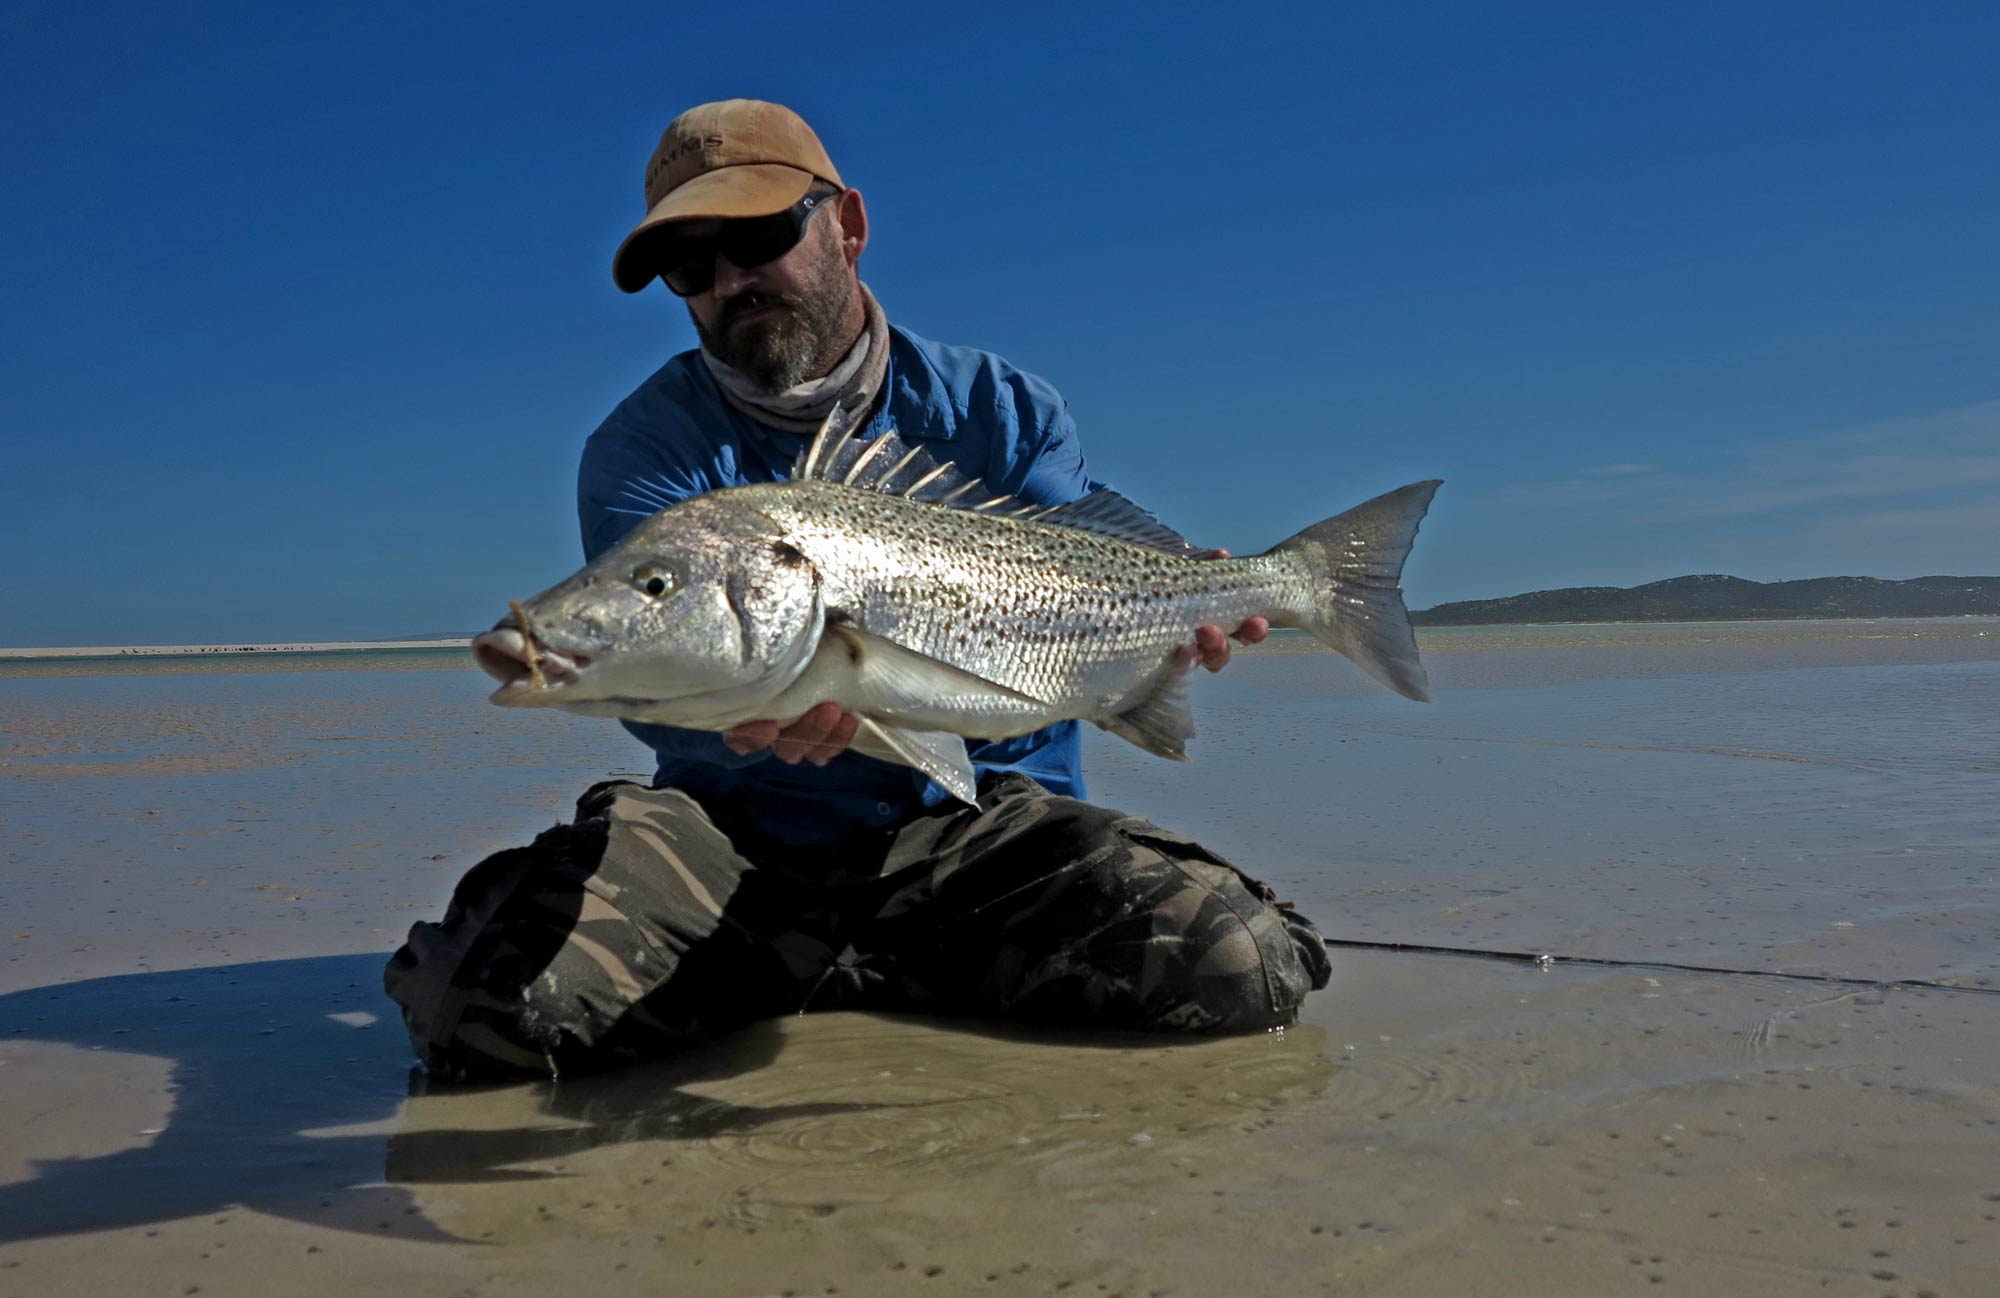 Conrad with a tank Spotted Grunter - a fish as difficult to nail as any Permit!